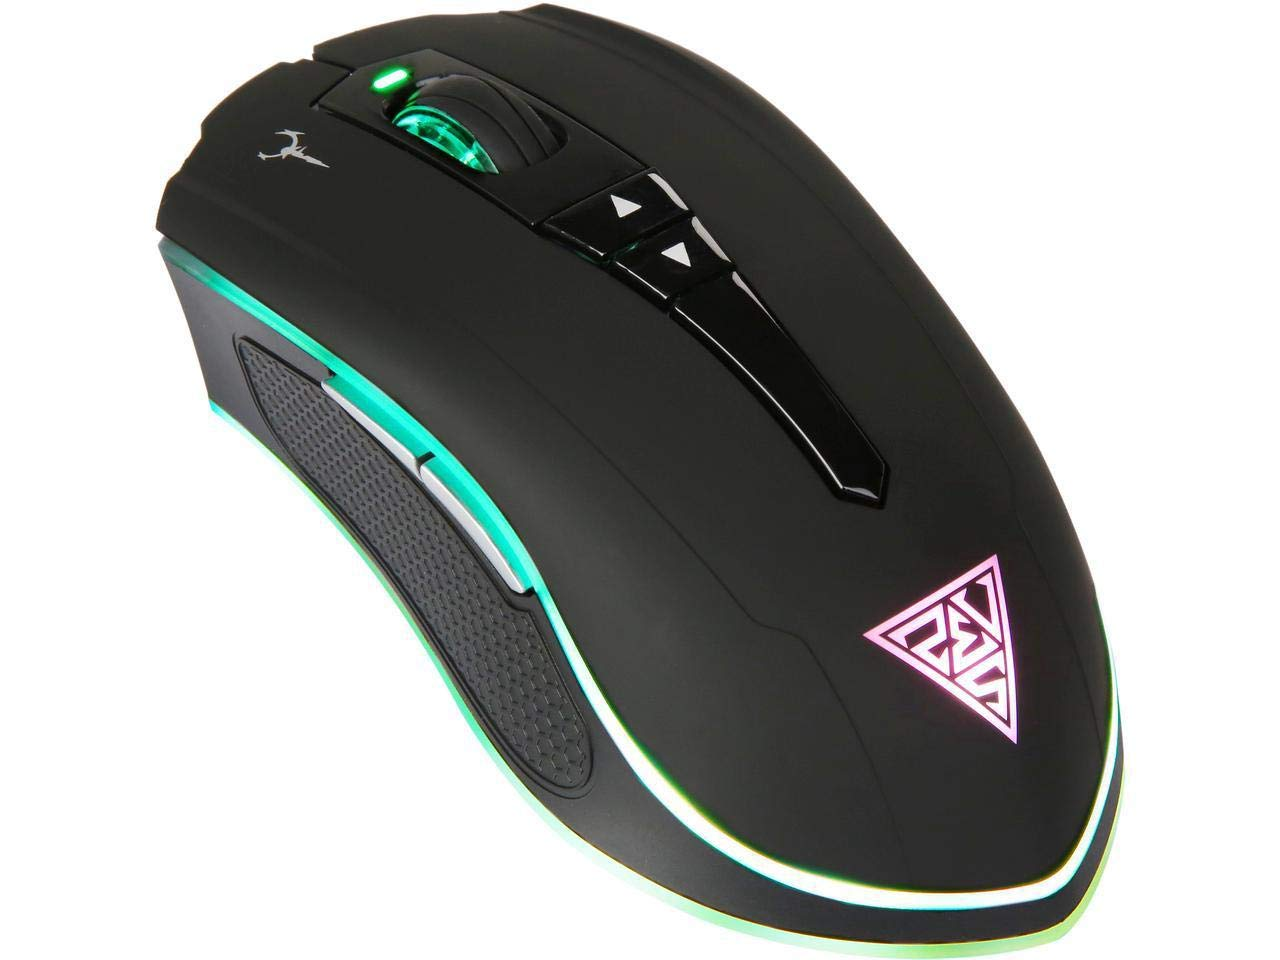 Mouse Gamer :  GAMDIAS Optical Wired/Wireless Double Level R